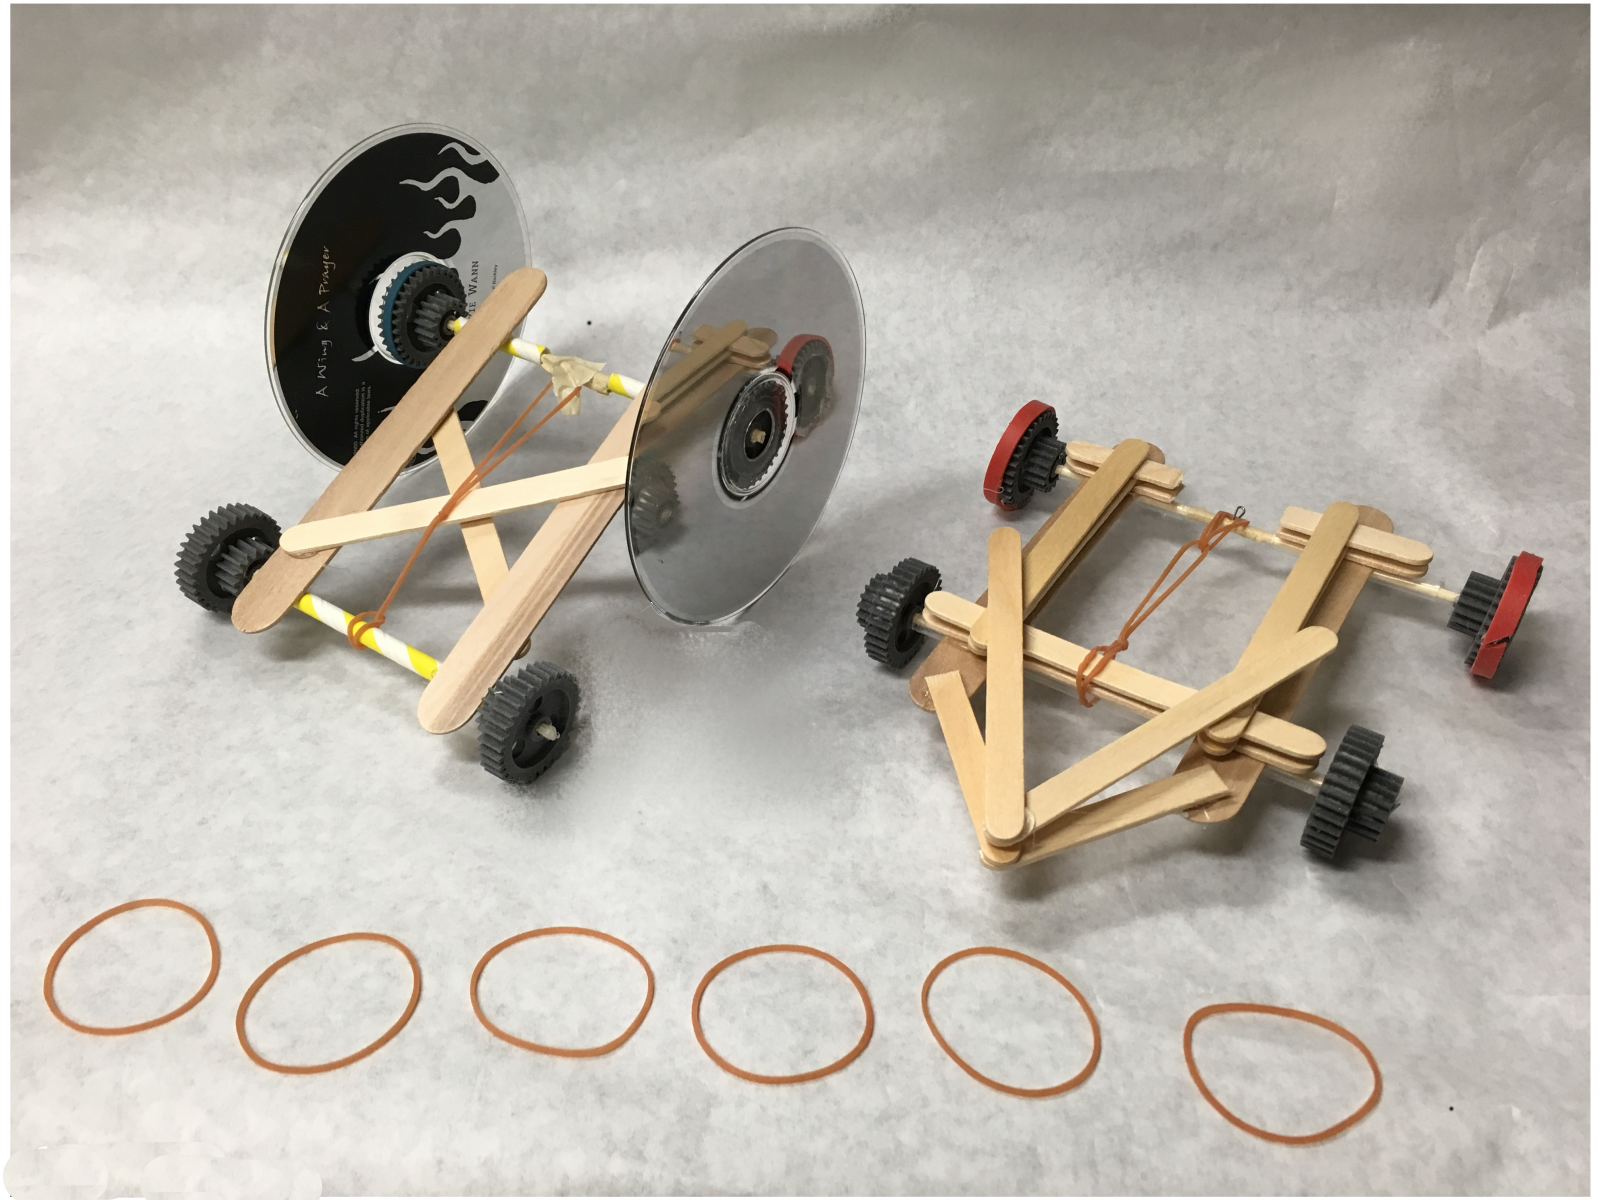 Make-It Rubber Band Car